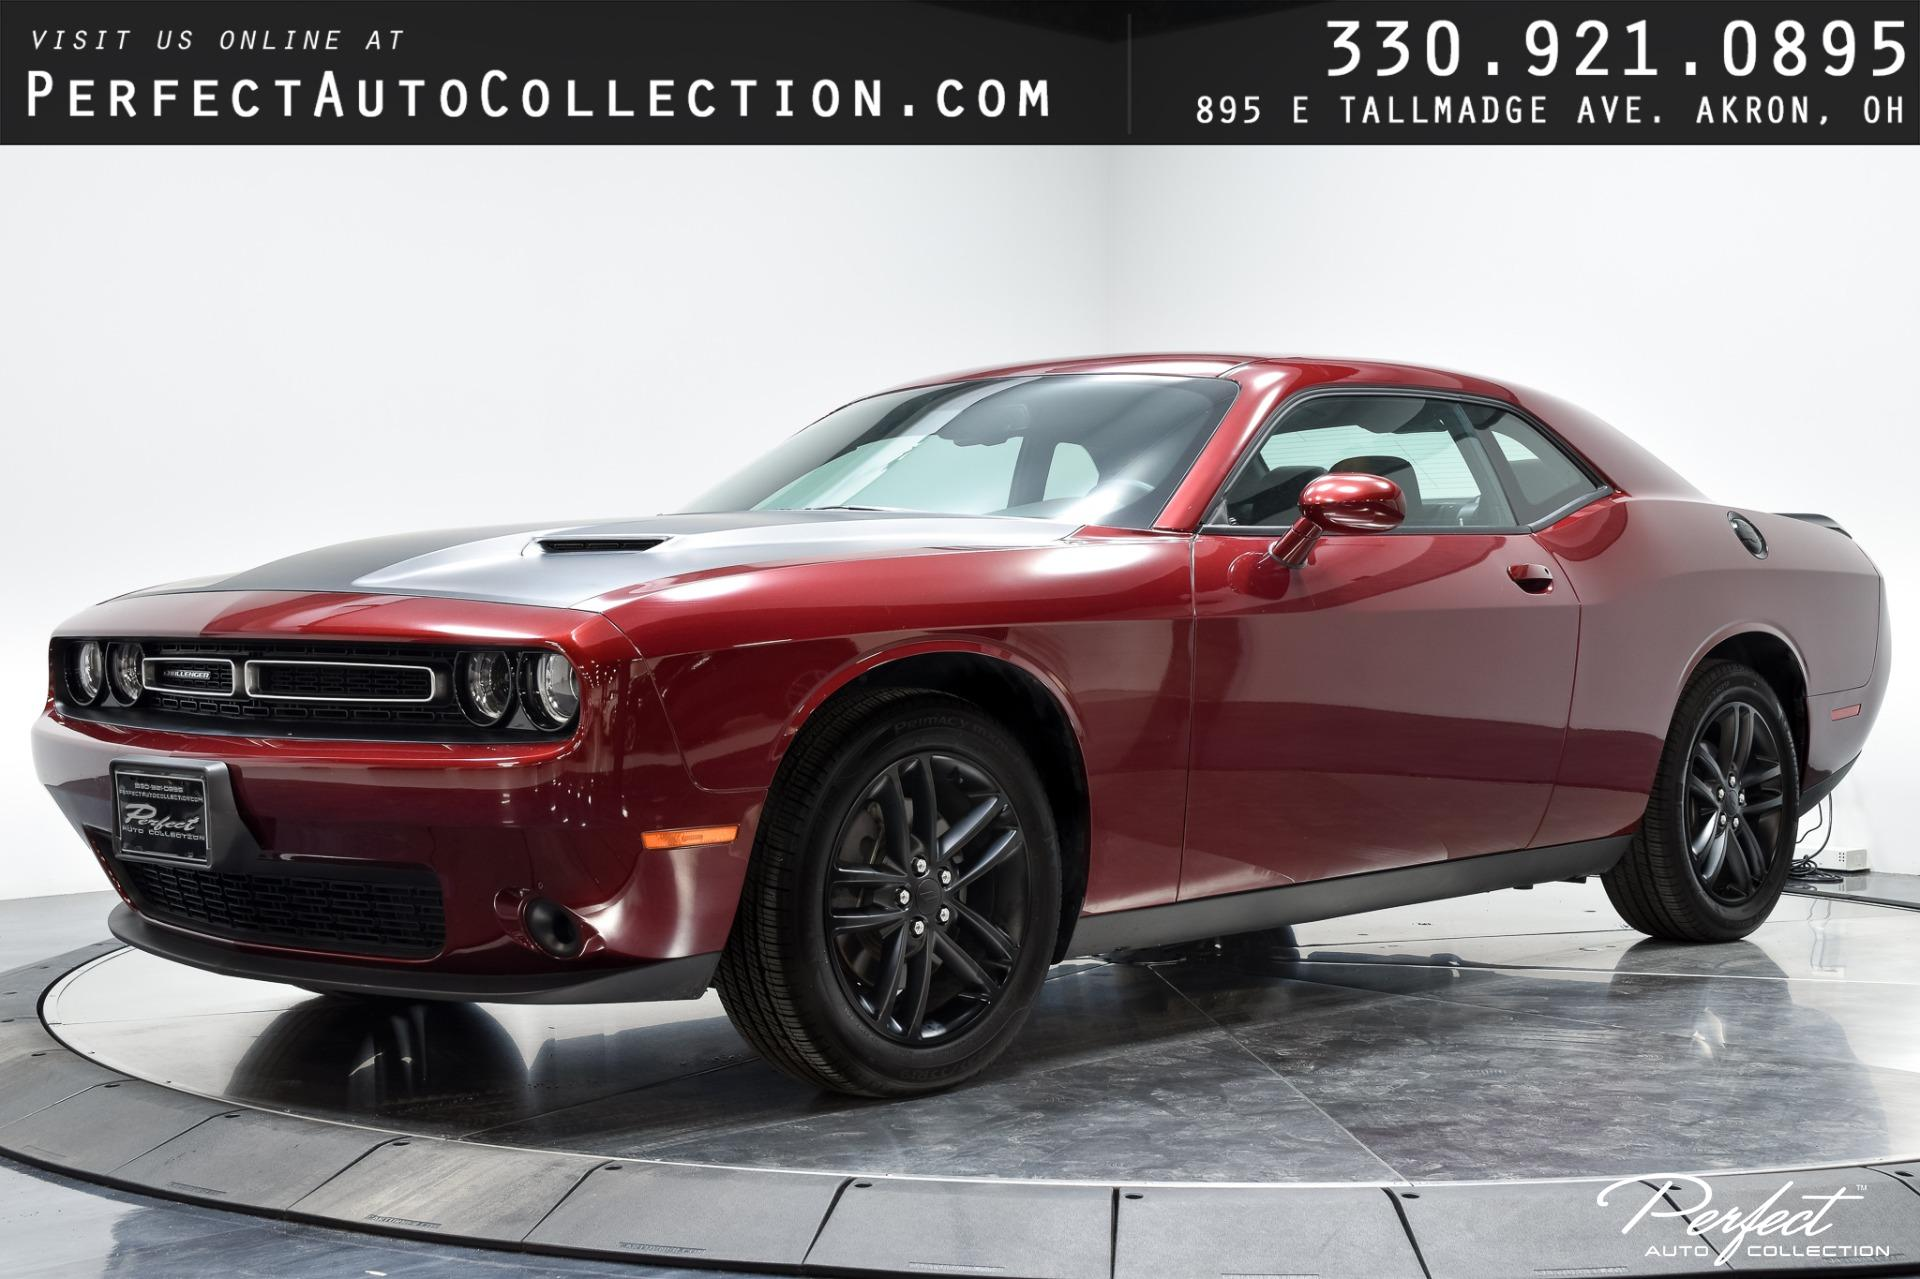 Used 2019 Dodge Challenger SXT for sale $25,395 at Perfect Auto Collection in Akron OH 44310 1